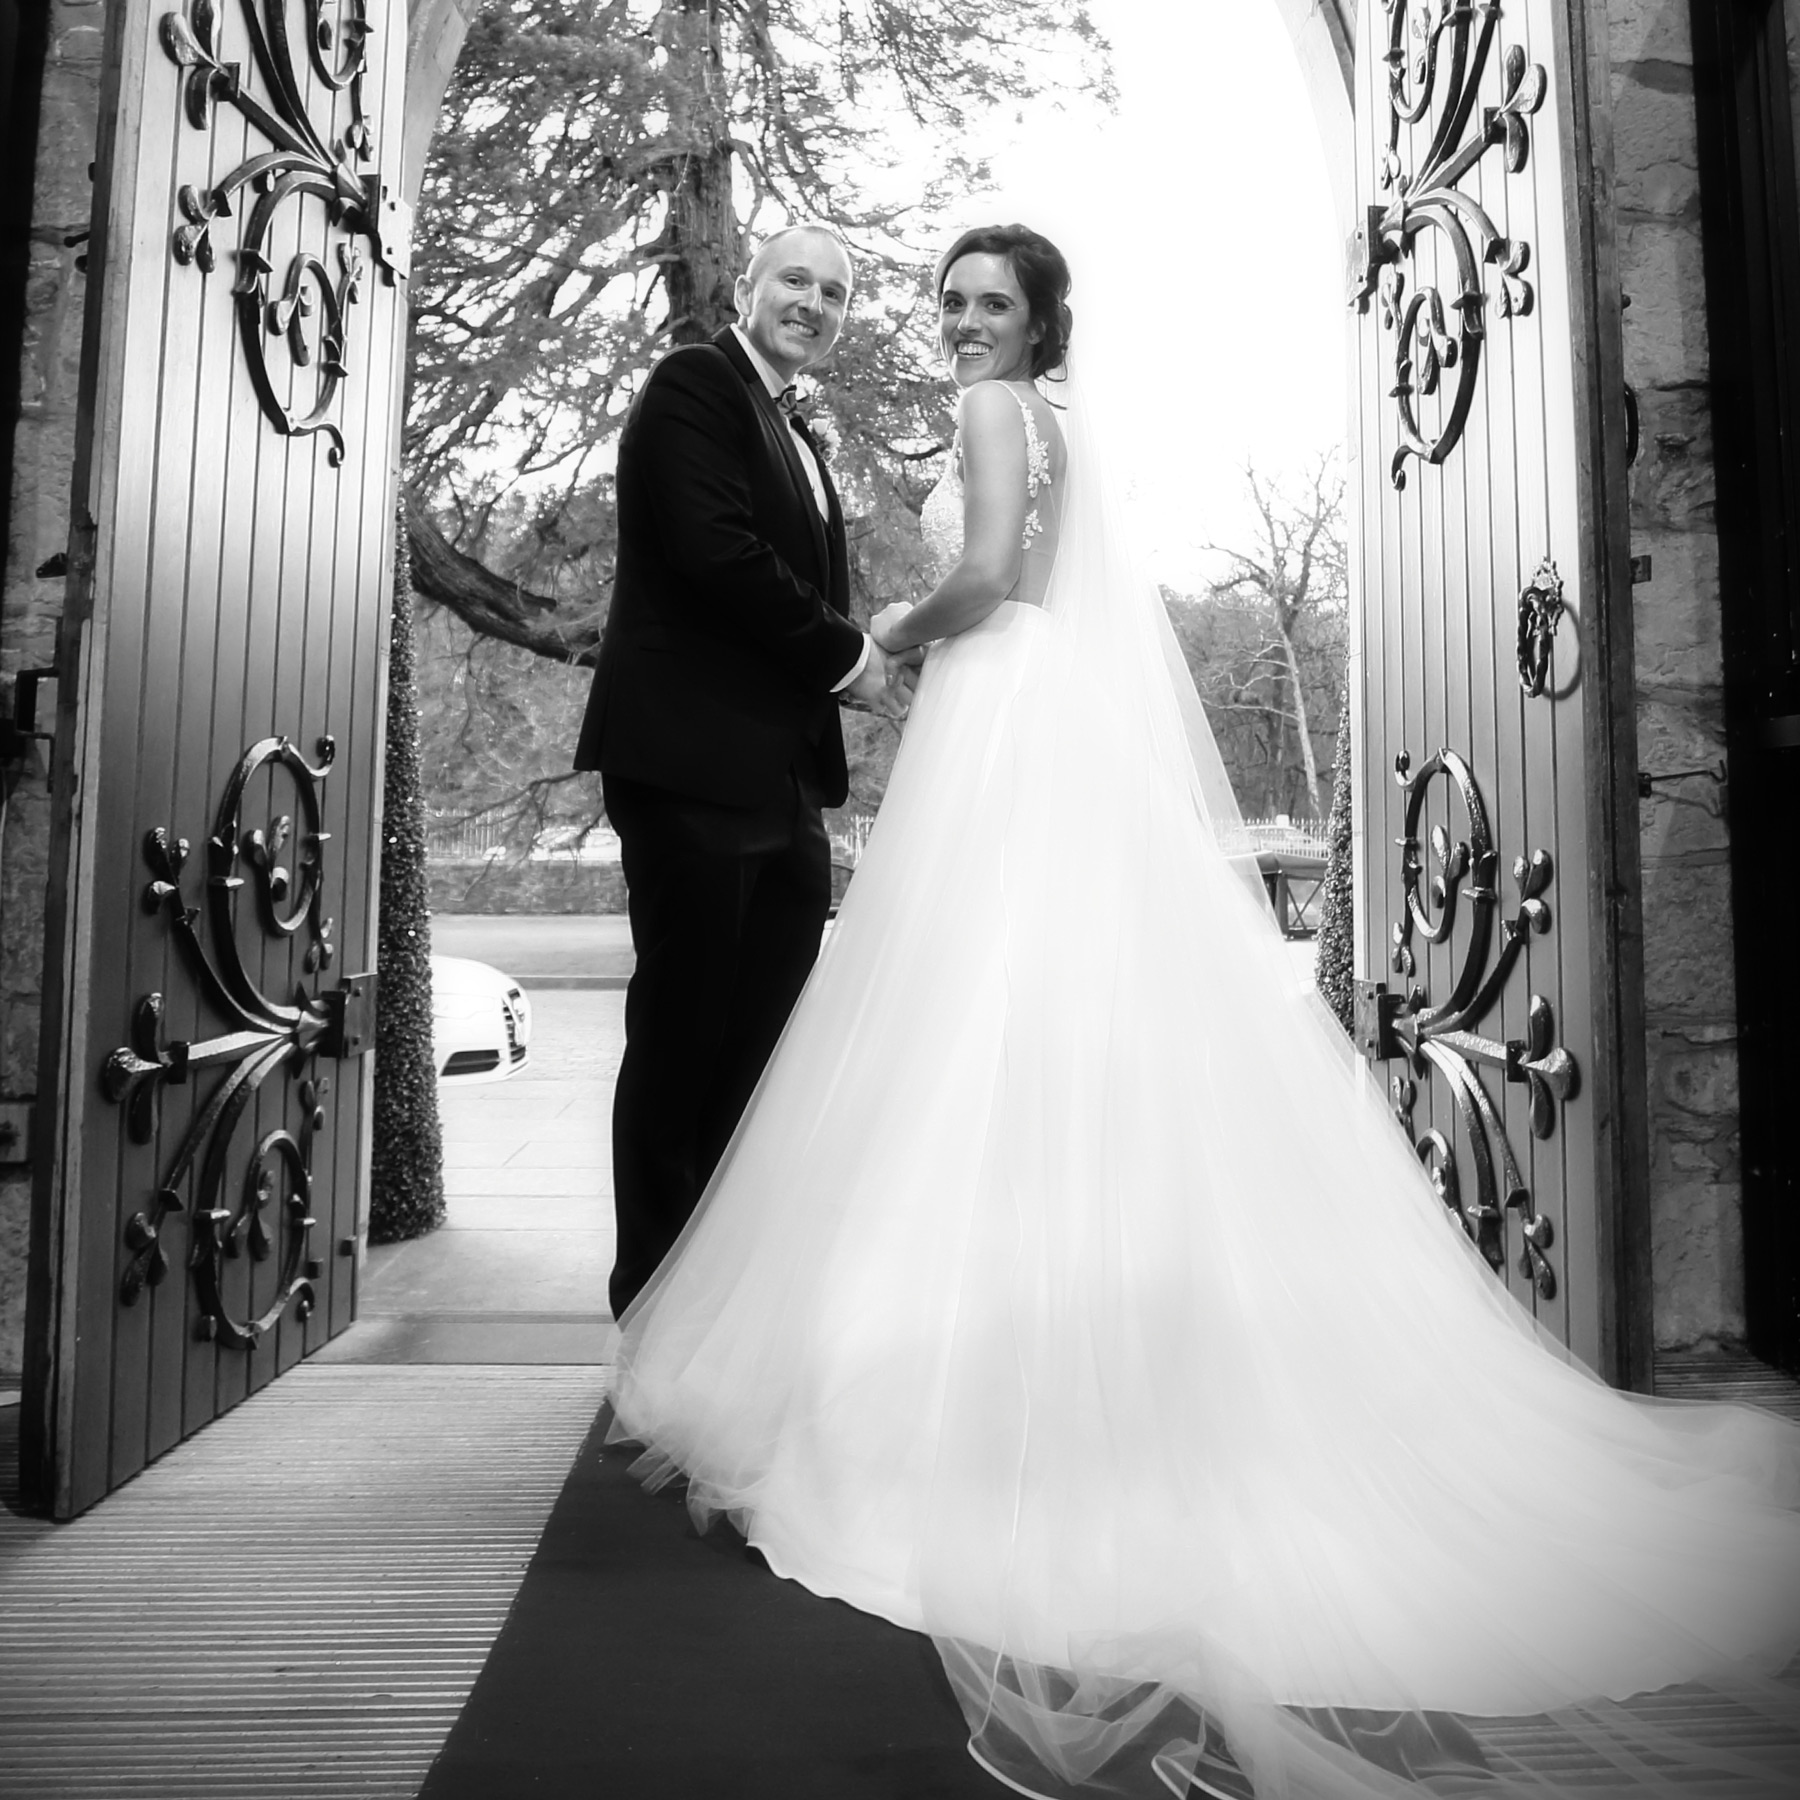 Wedding Photography Limerick | Michael Martin Photography